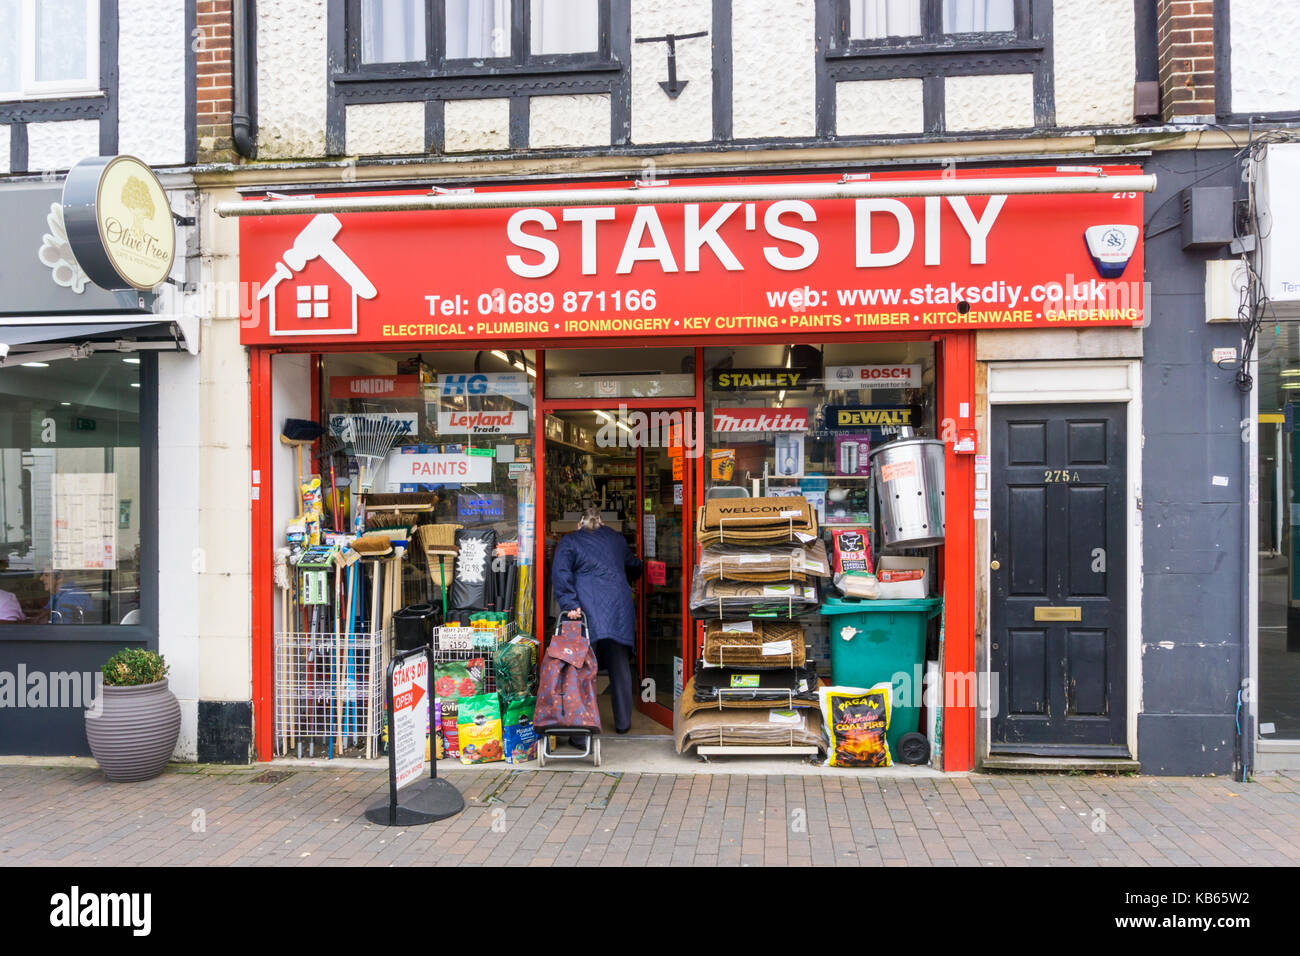 Staks diy do it yourself shop and builders merchants on staks diy do it yourself shop and builders merchants on orpington high street solutioingenieria Image collections